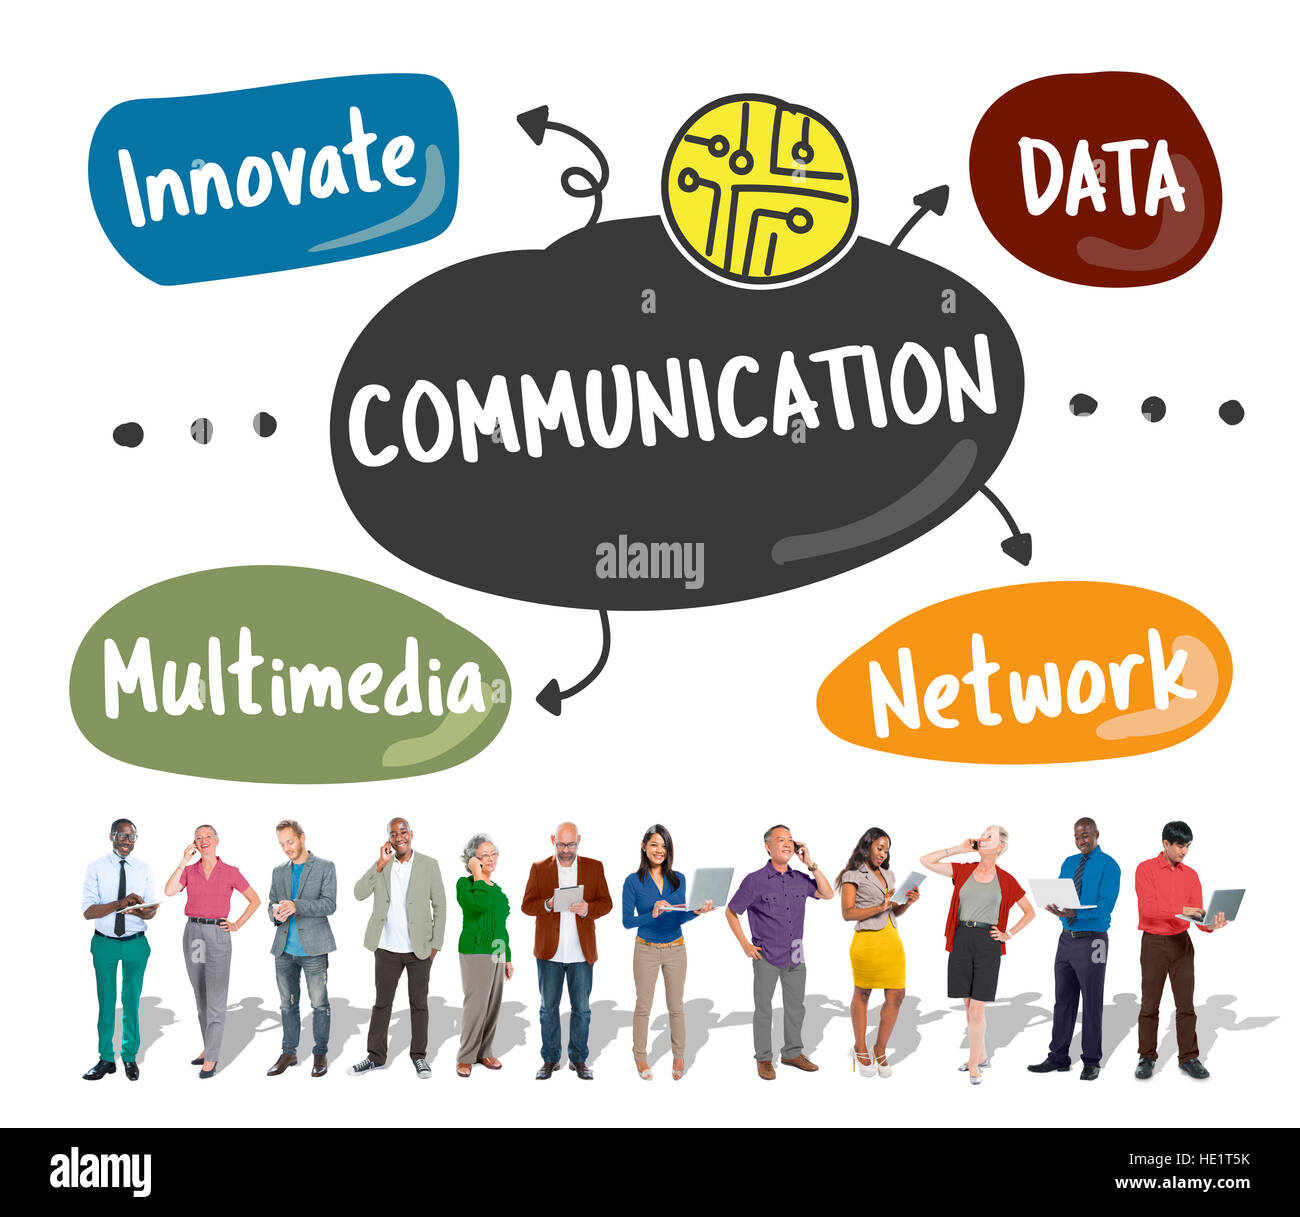 Internet Connection Word Diagram Concept Stock Photos & Internet ...